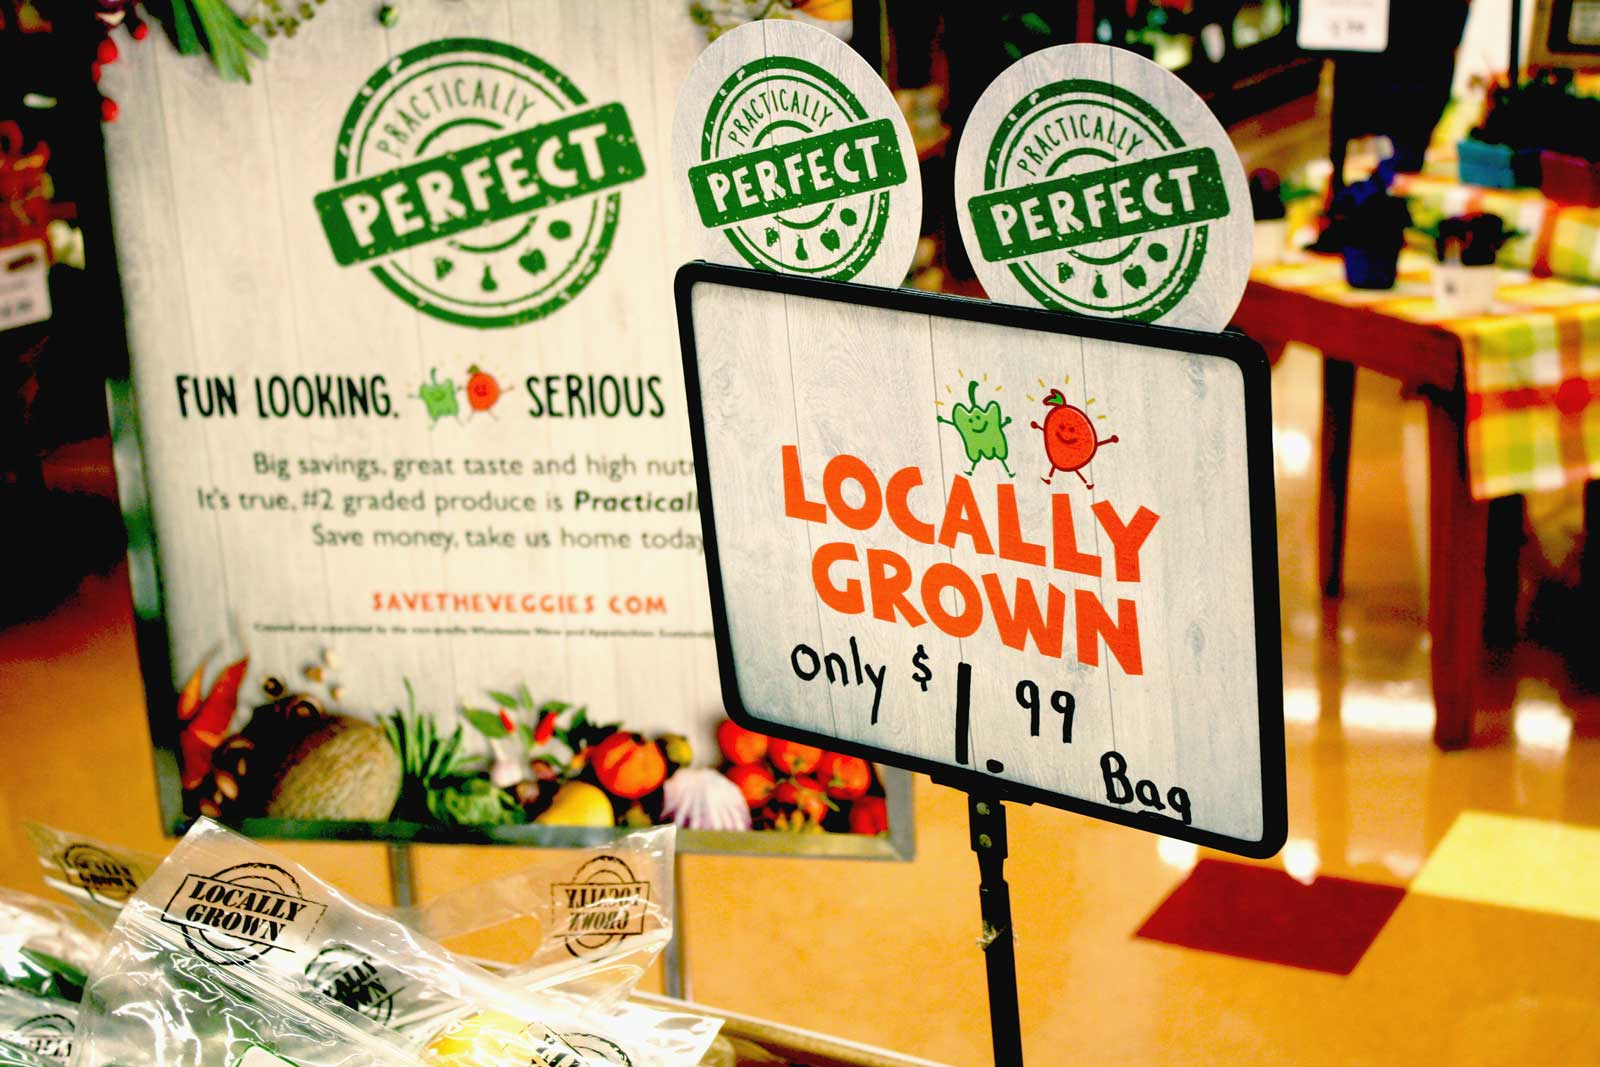 Practically Perfect brand in-store signs identifying locally grown vegetables